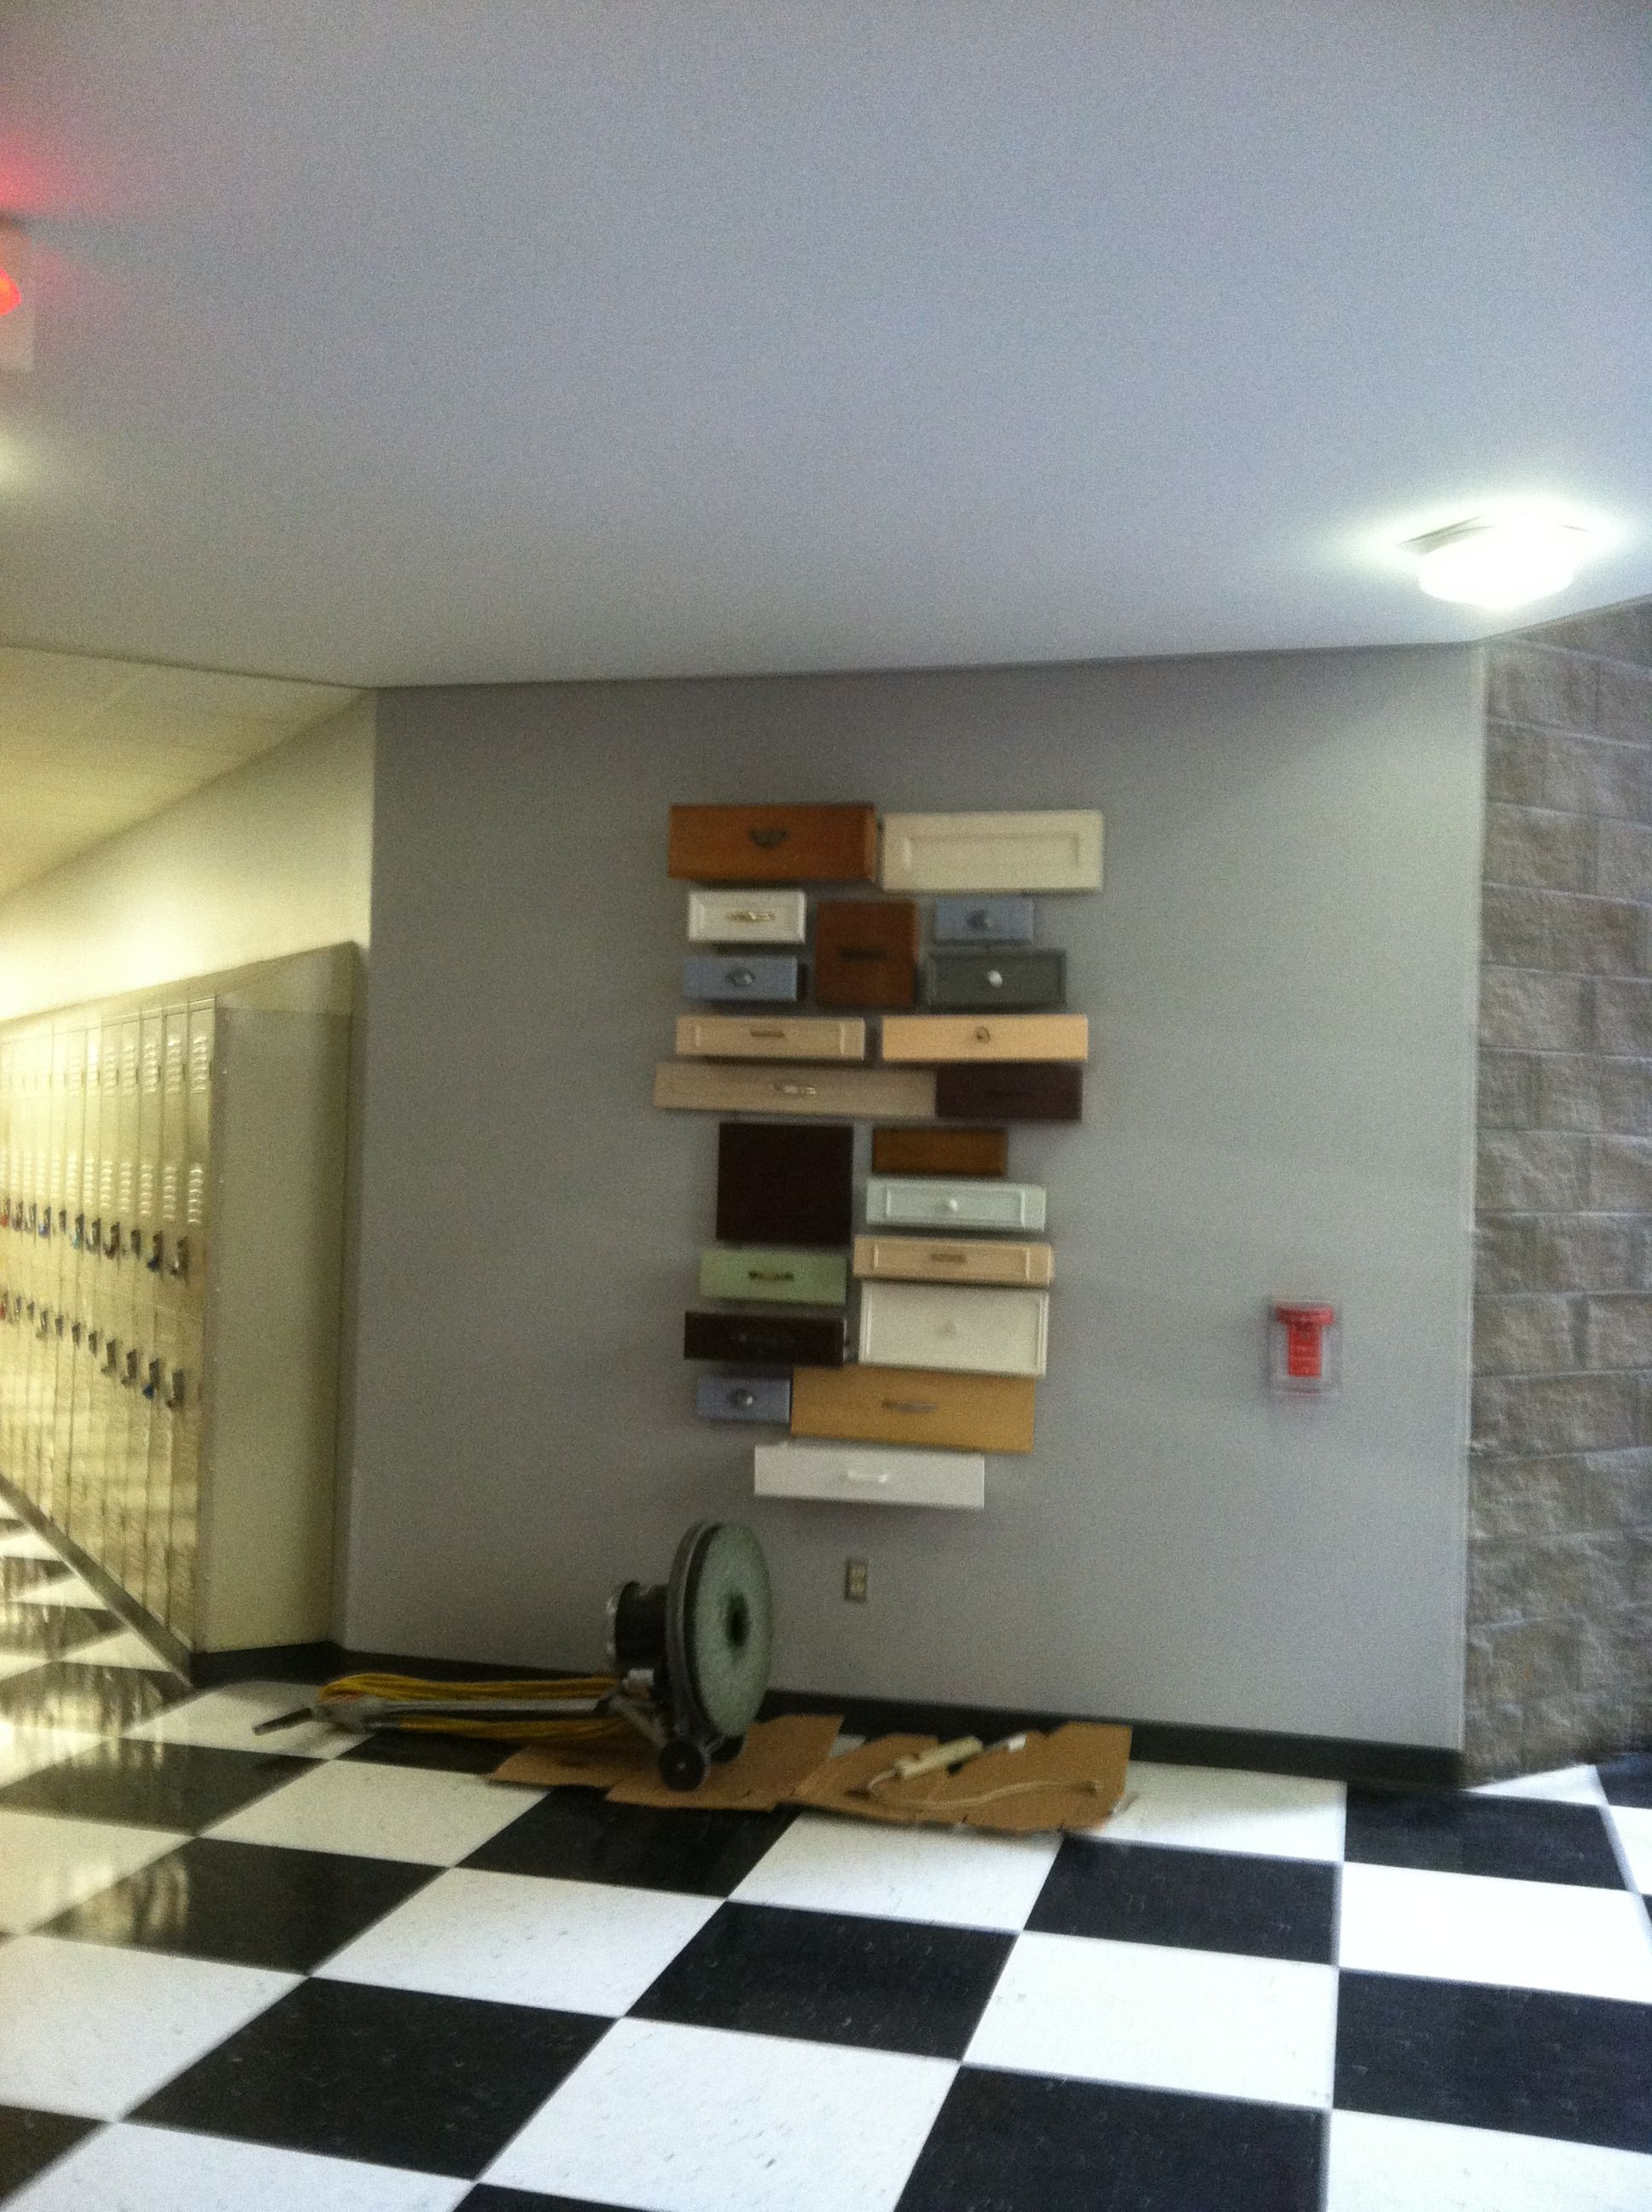 Great Reuse Of Cabinet Drawers Art Installation At Hspva With Images Cabinet Drawers Home Decor Cabinet